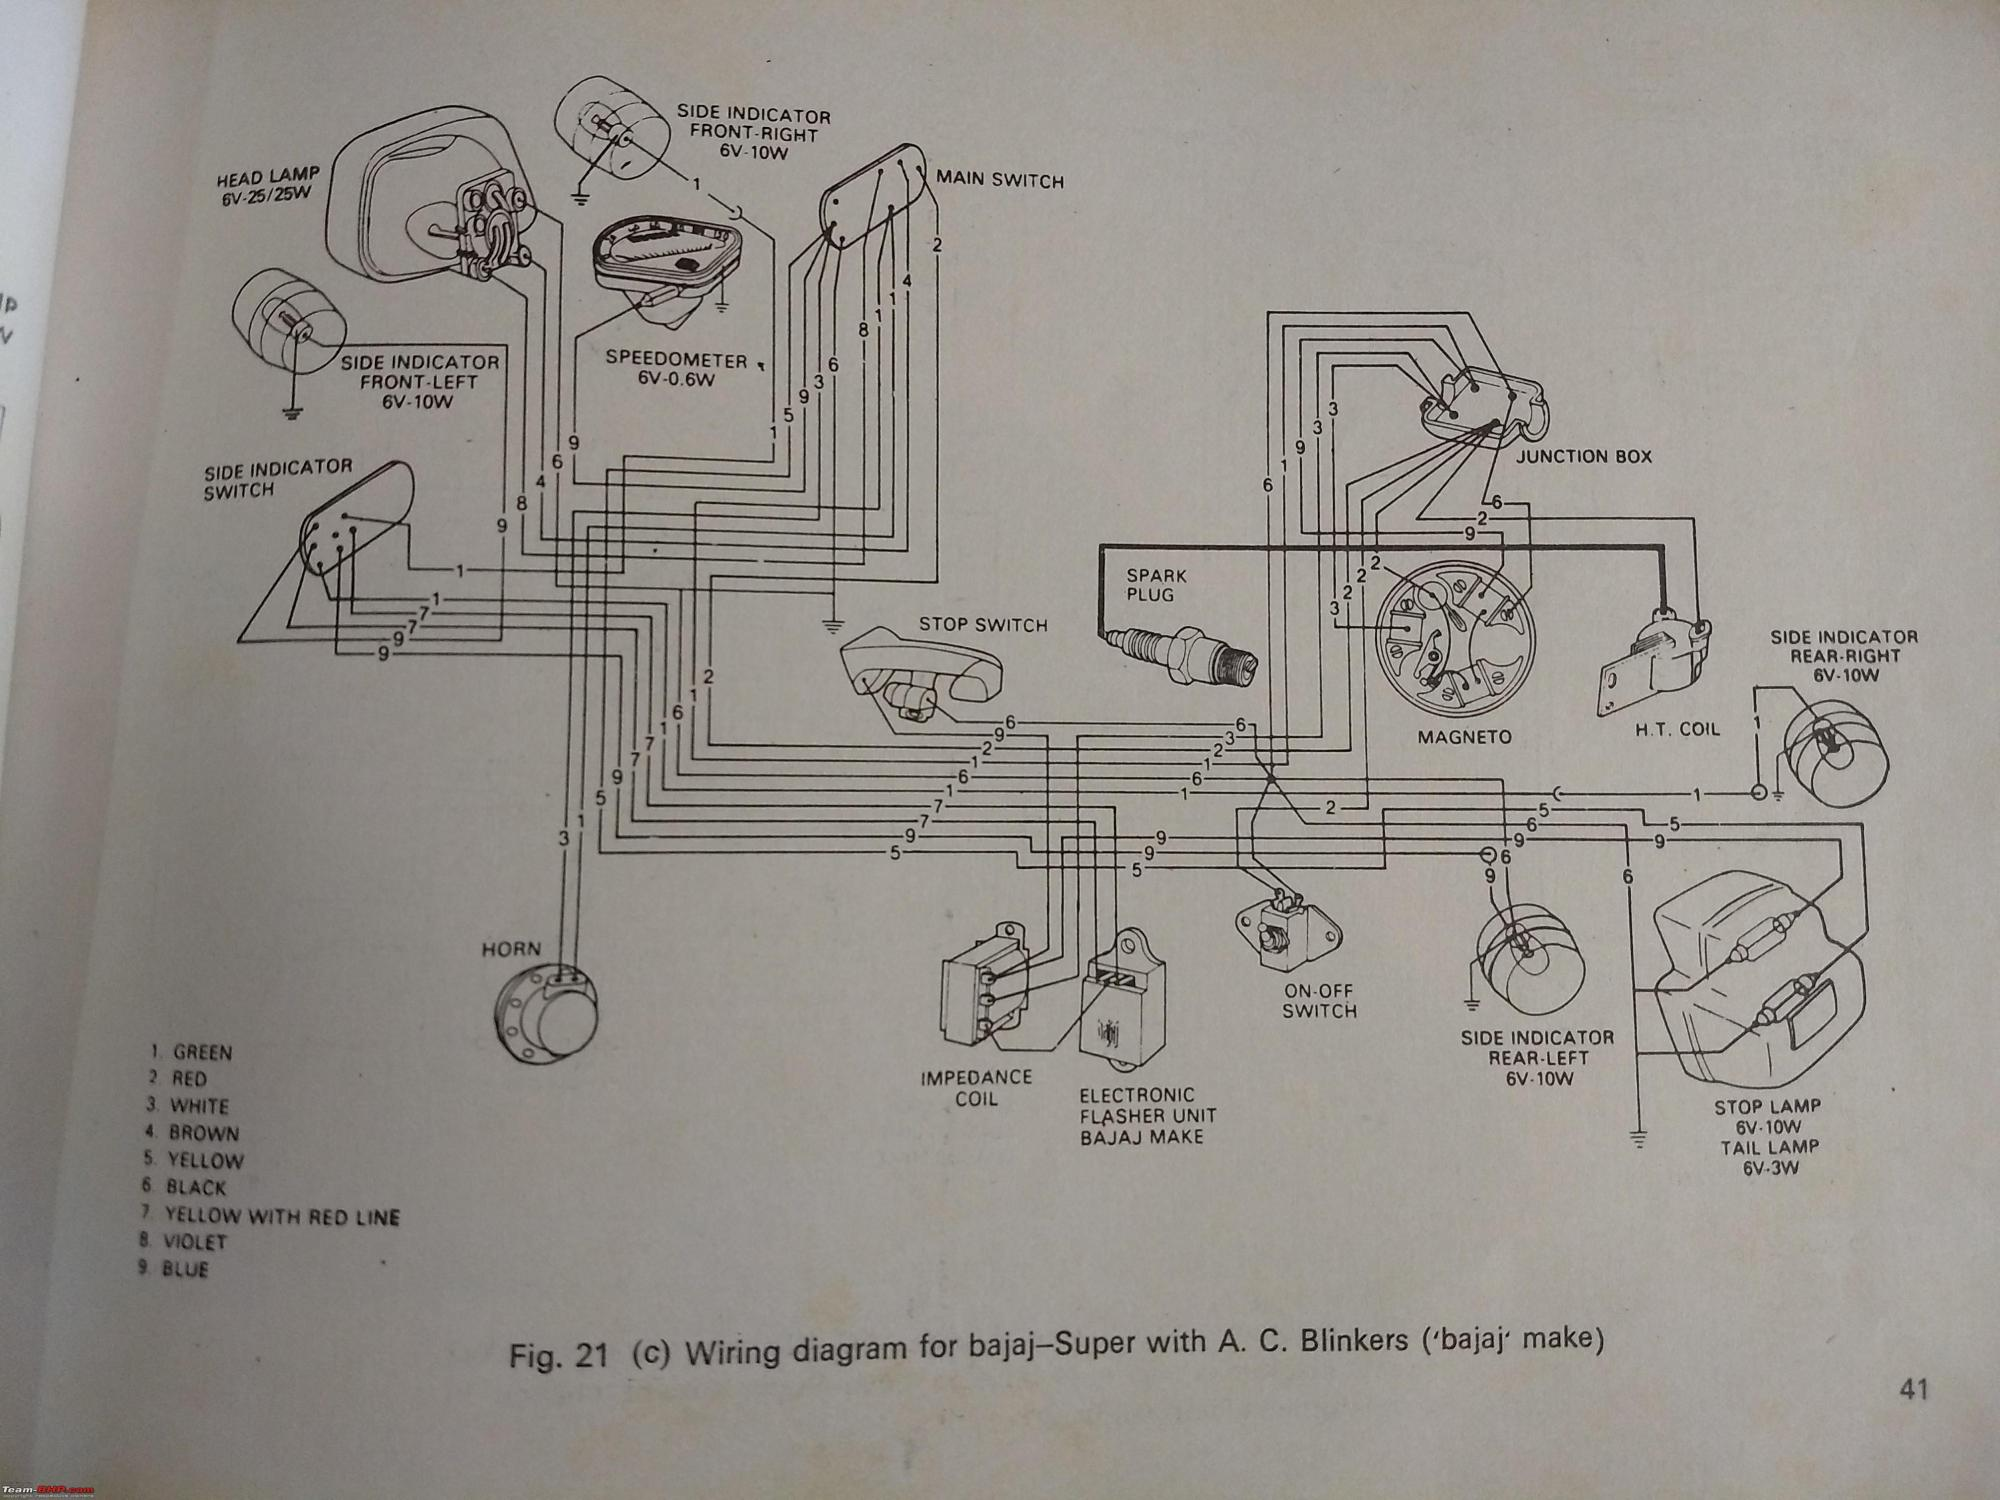 hight resolution of wiring diagram for bajaj super blog wiring diagram bajaj super wiring harness